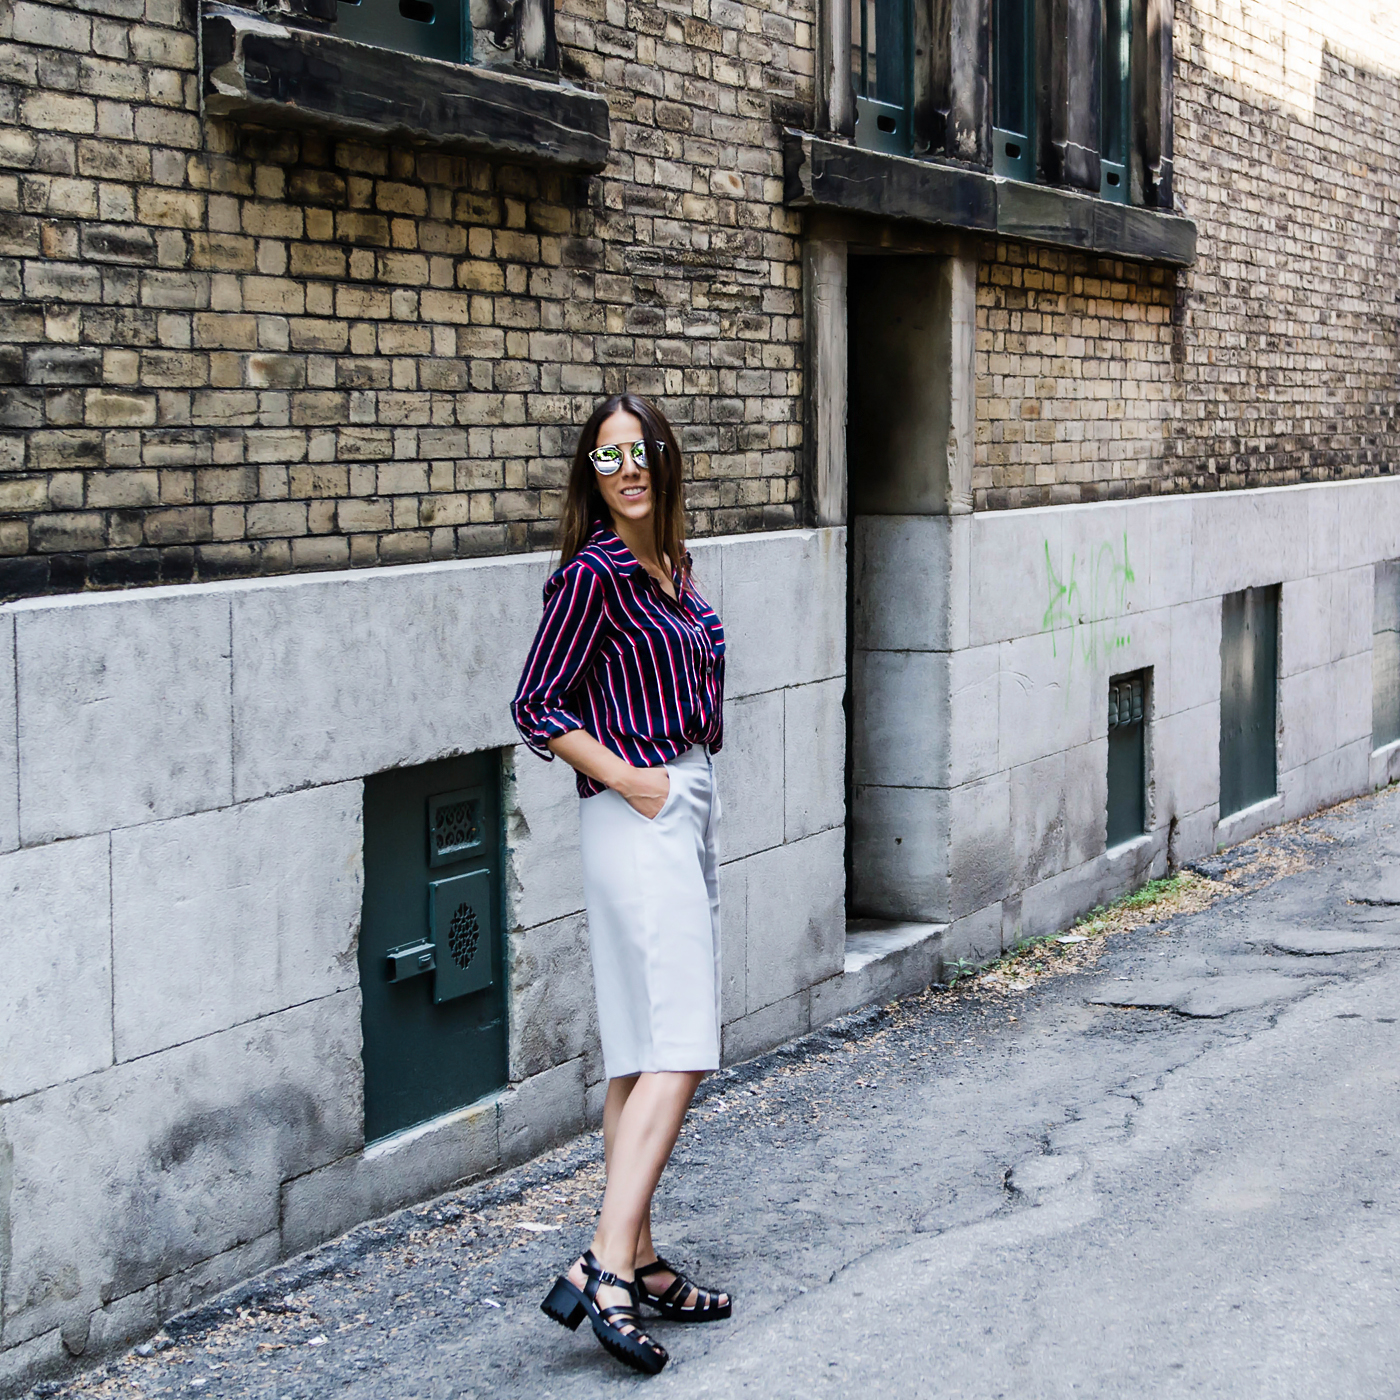 alison liaudat, blog mode suisse, swiss fashion blogger, blog suisse, blog switzerland, québec, shooting, boyish outfit, short culotte, forever21, dior so real,